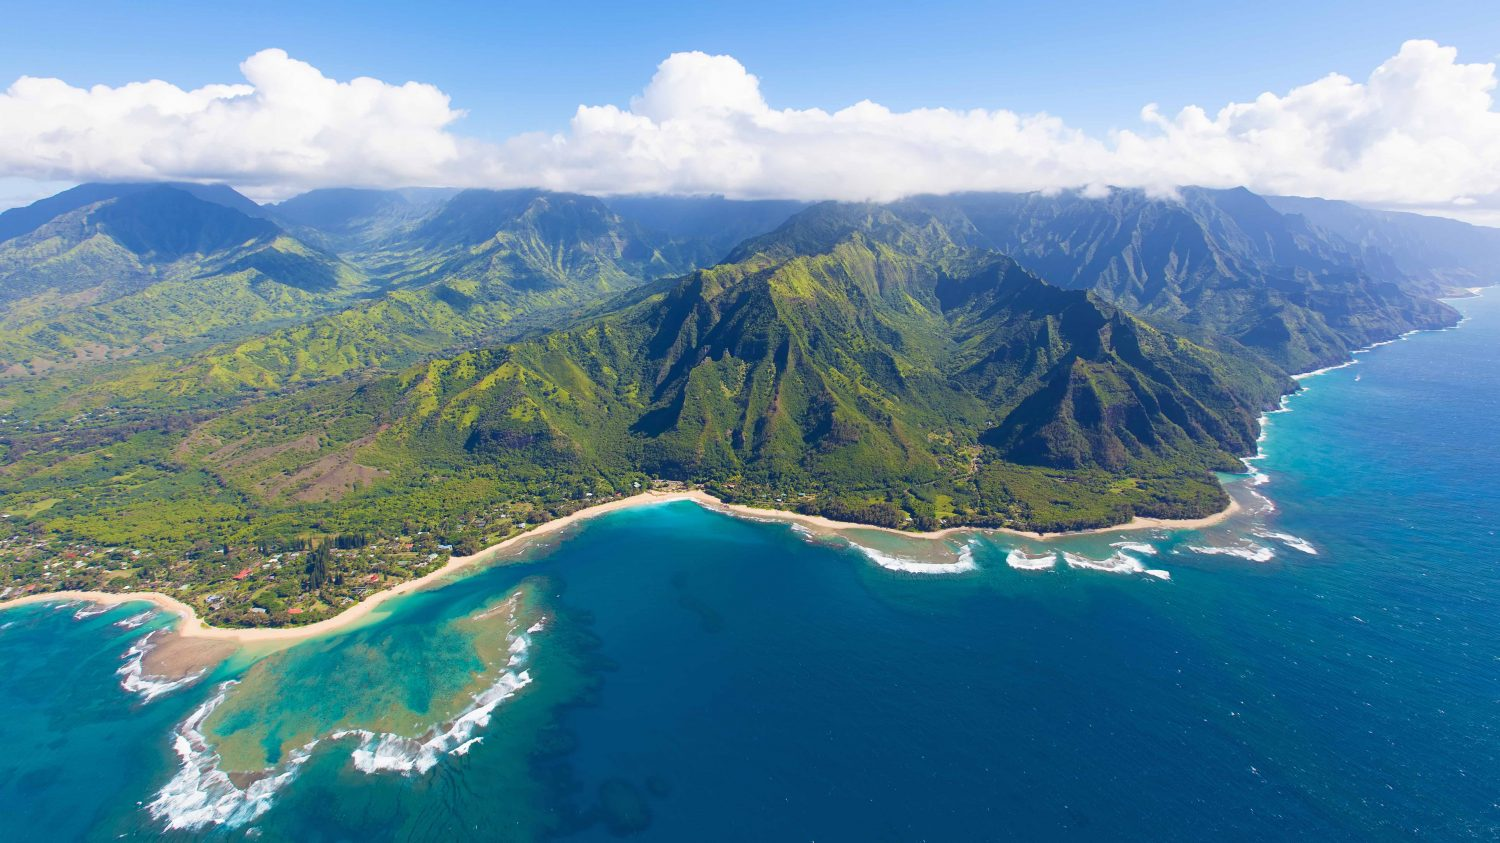 Two Hawaiian Politicians Want to Explore Blockchain Tech for Tourism - CoinDesk